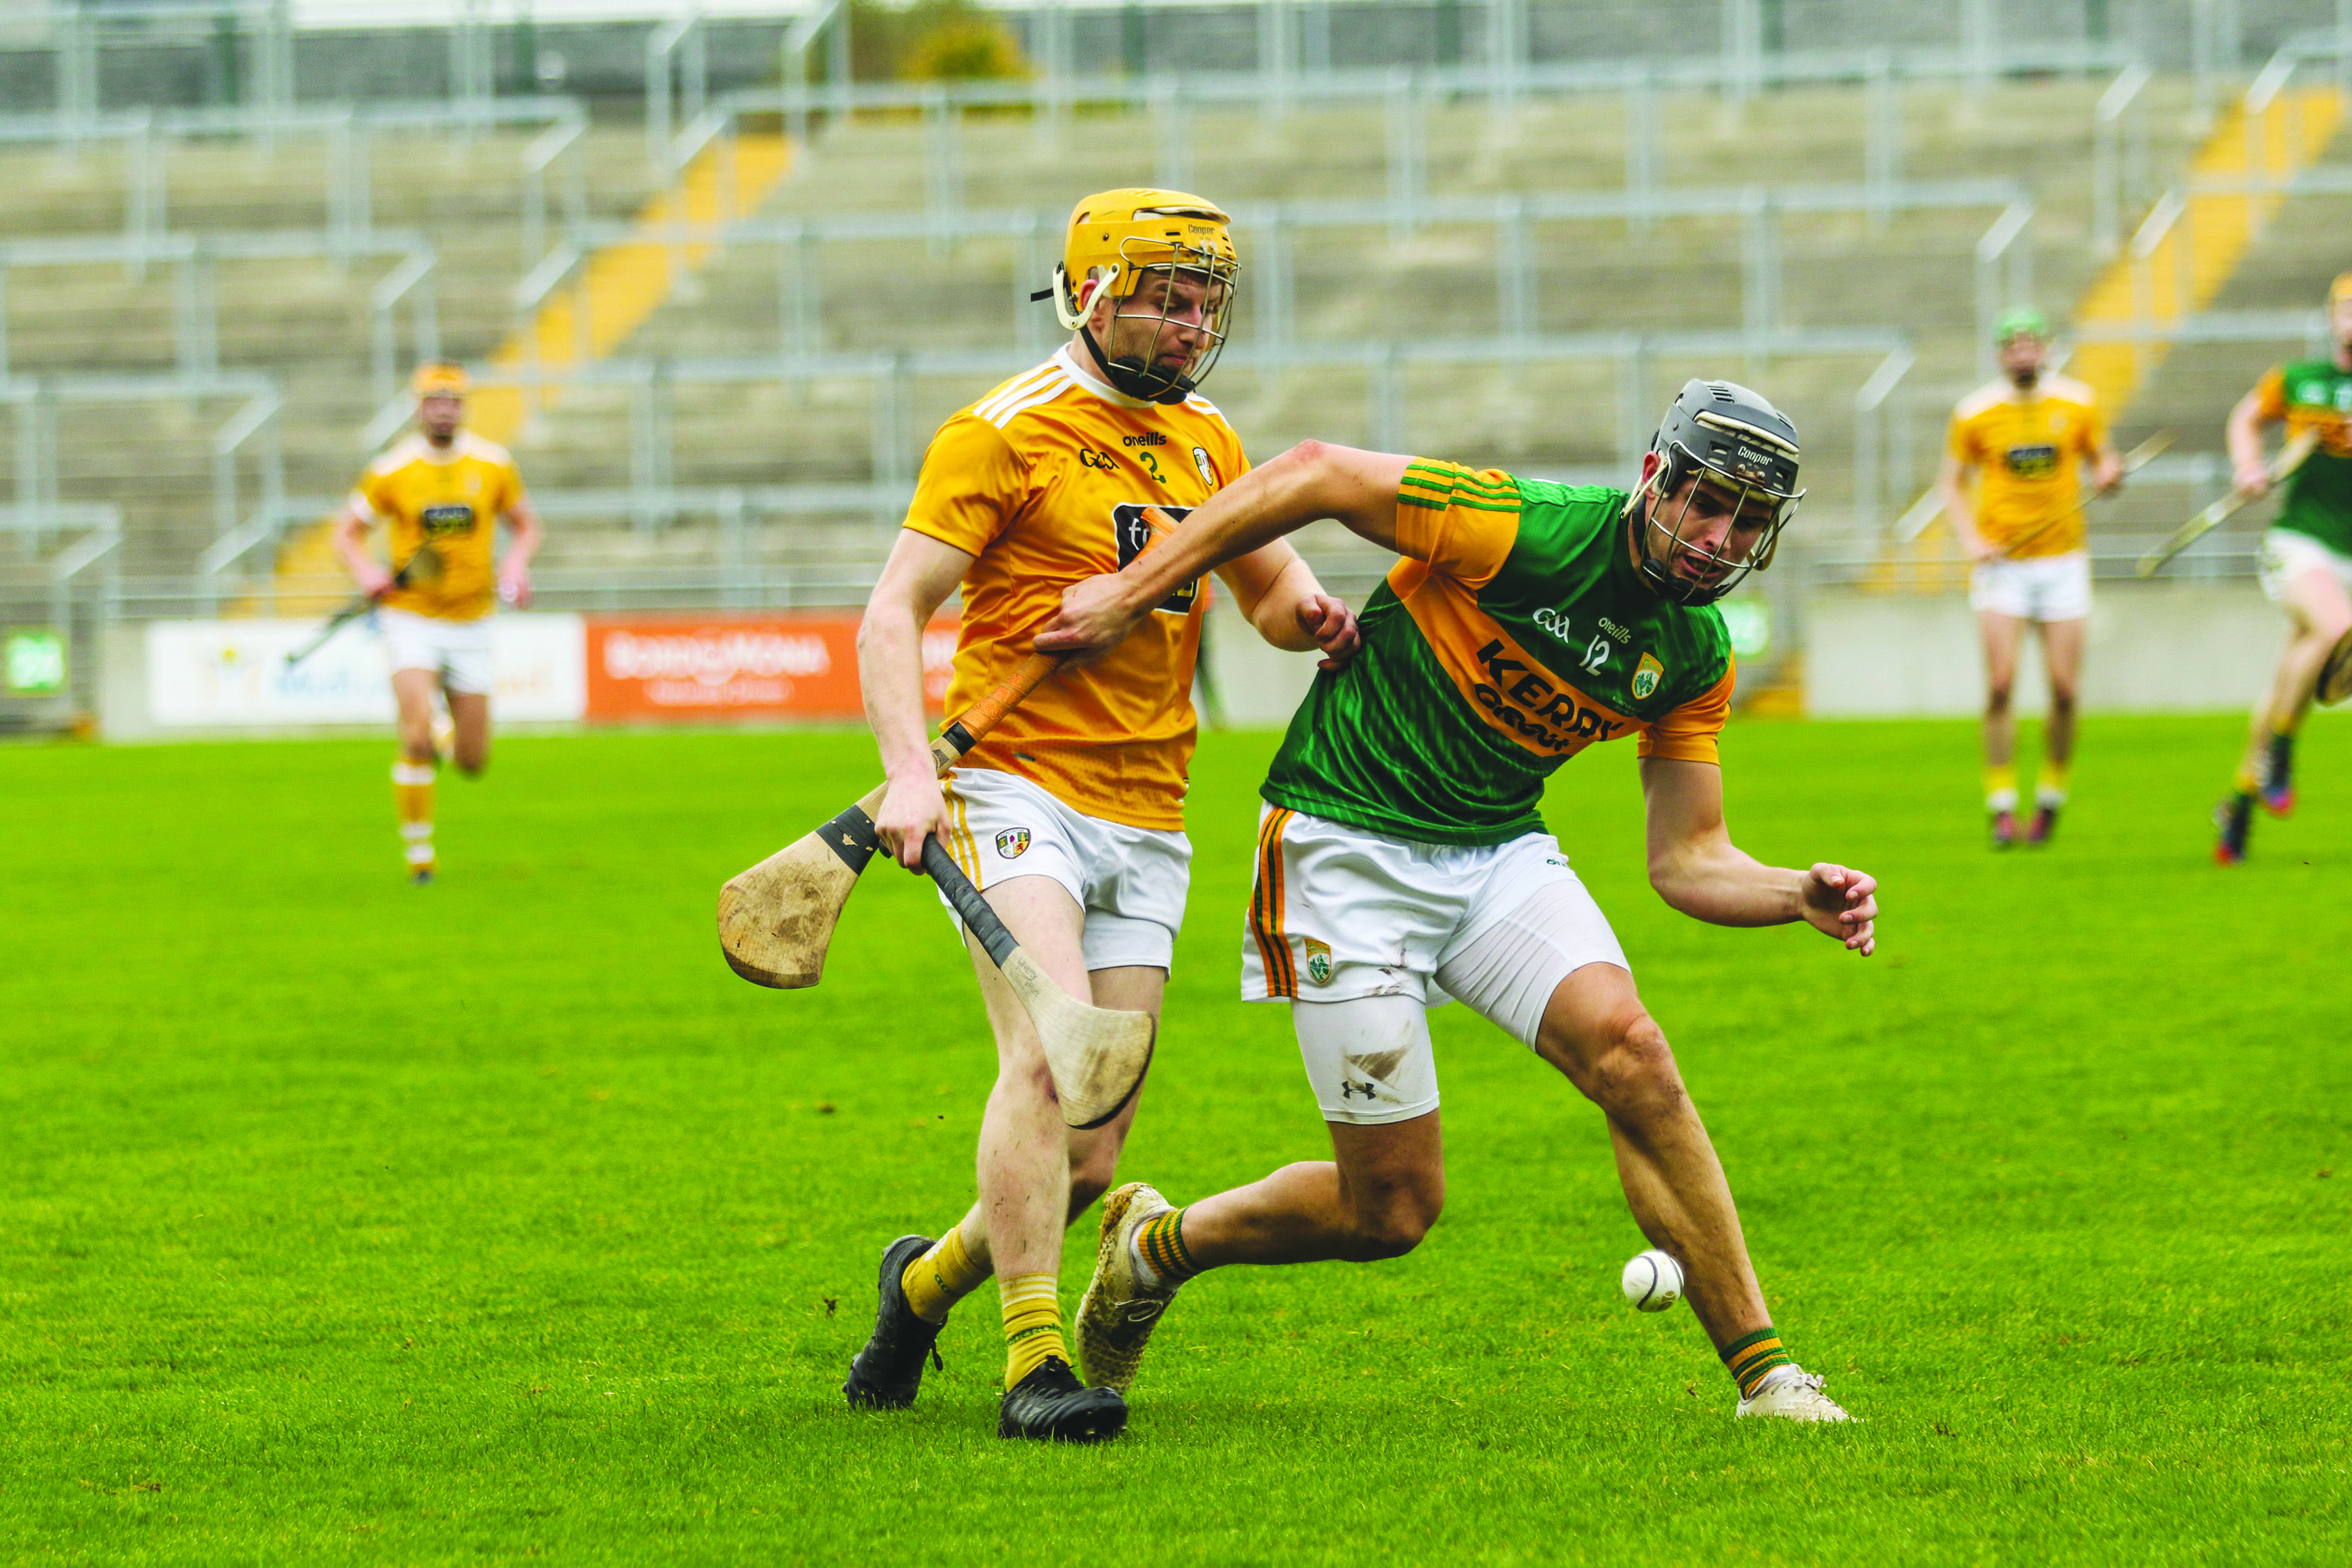 Antrim have beaten Kerry twice this year, including last month's Division 2A League final (pictured) but manager Darren Gleeson warns the Munster men will be a much more difficult proposition when they visit Corrigan Park onSaturday